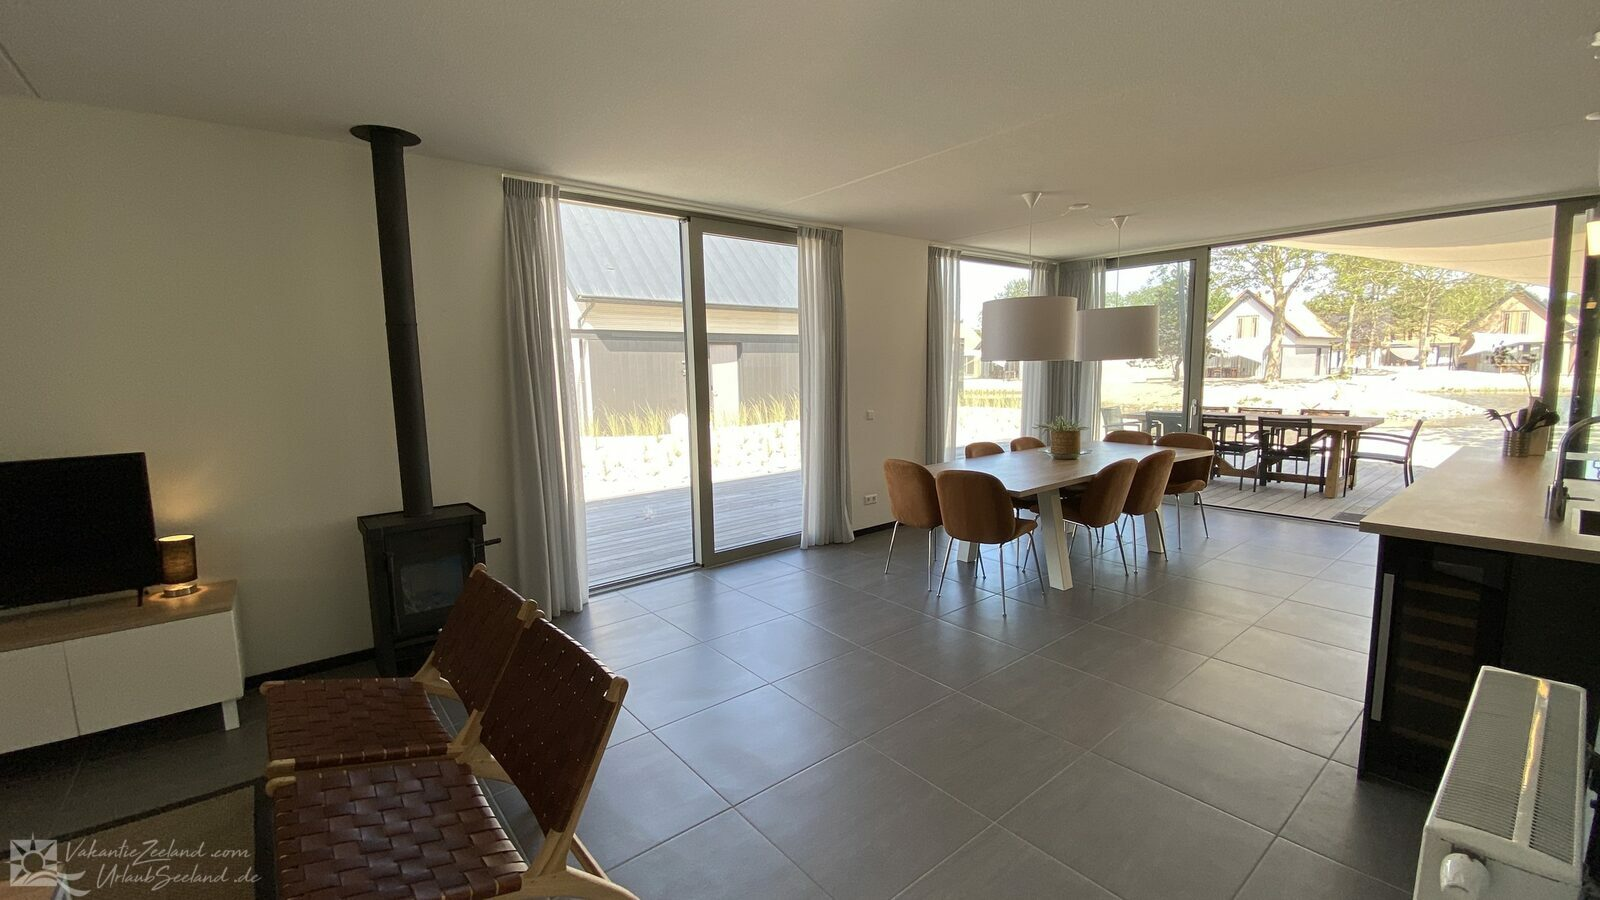 VZ845 Luxury holiday home Ouddorp